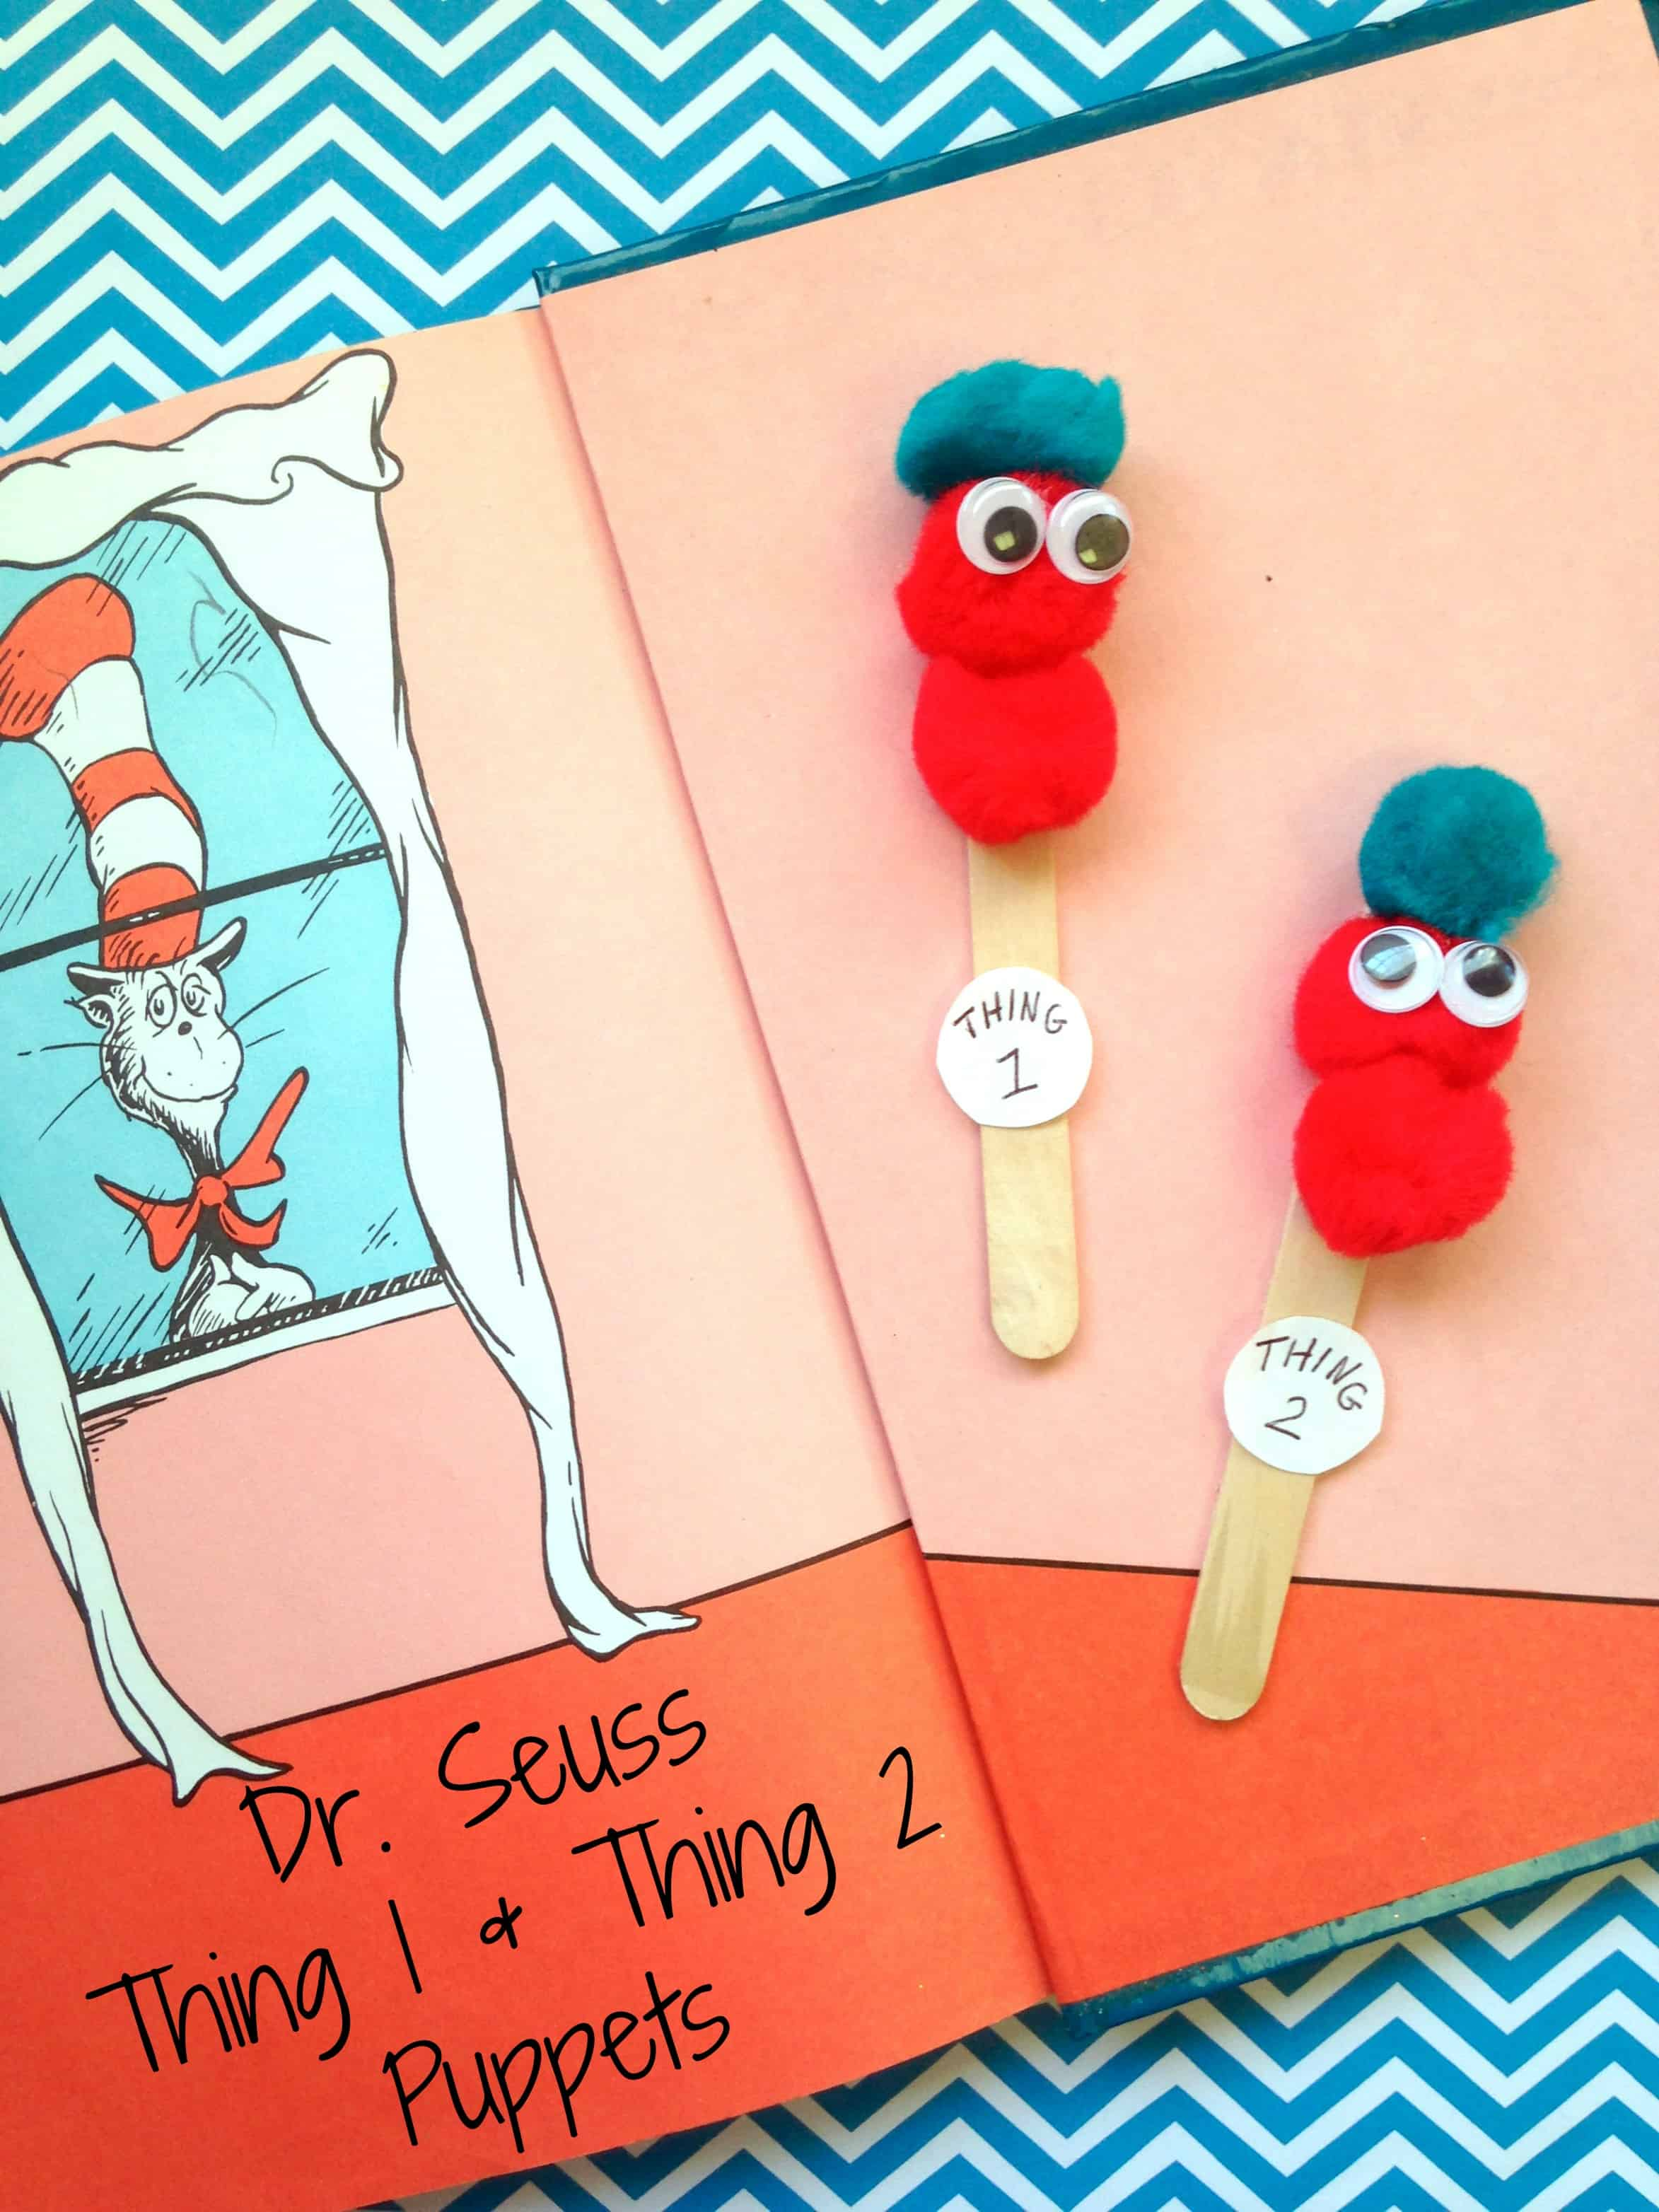 Dr Seuss Thing 1 And Thing 2 Puppets Kids Craft Stick Craft